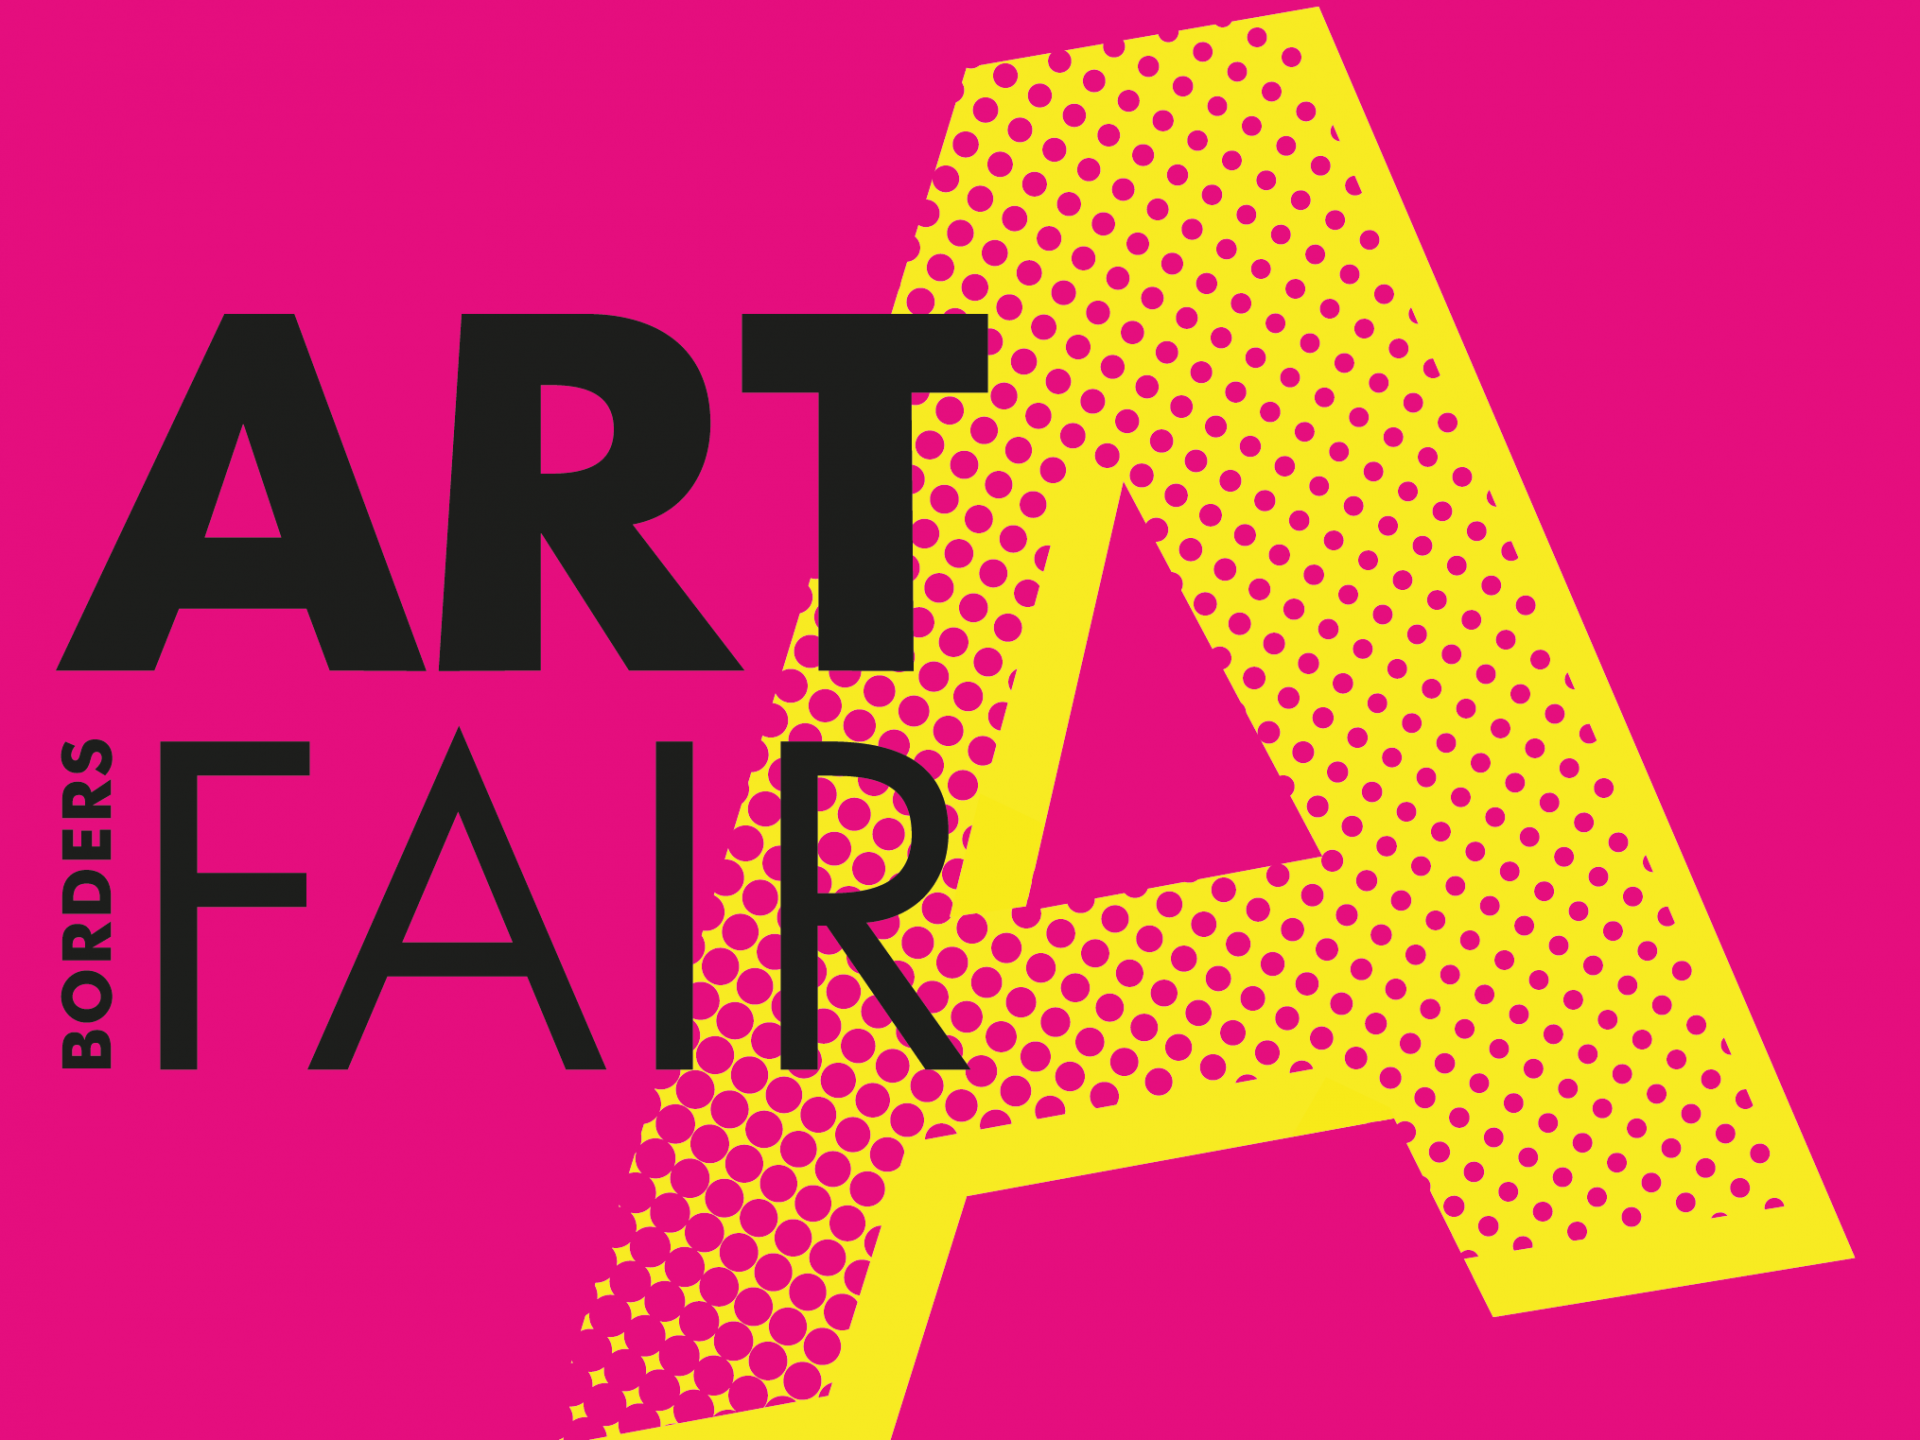 Logo for the Borders Art Fair at the Border Union Showground in Kelso, Scottish Borders